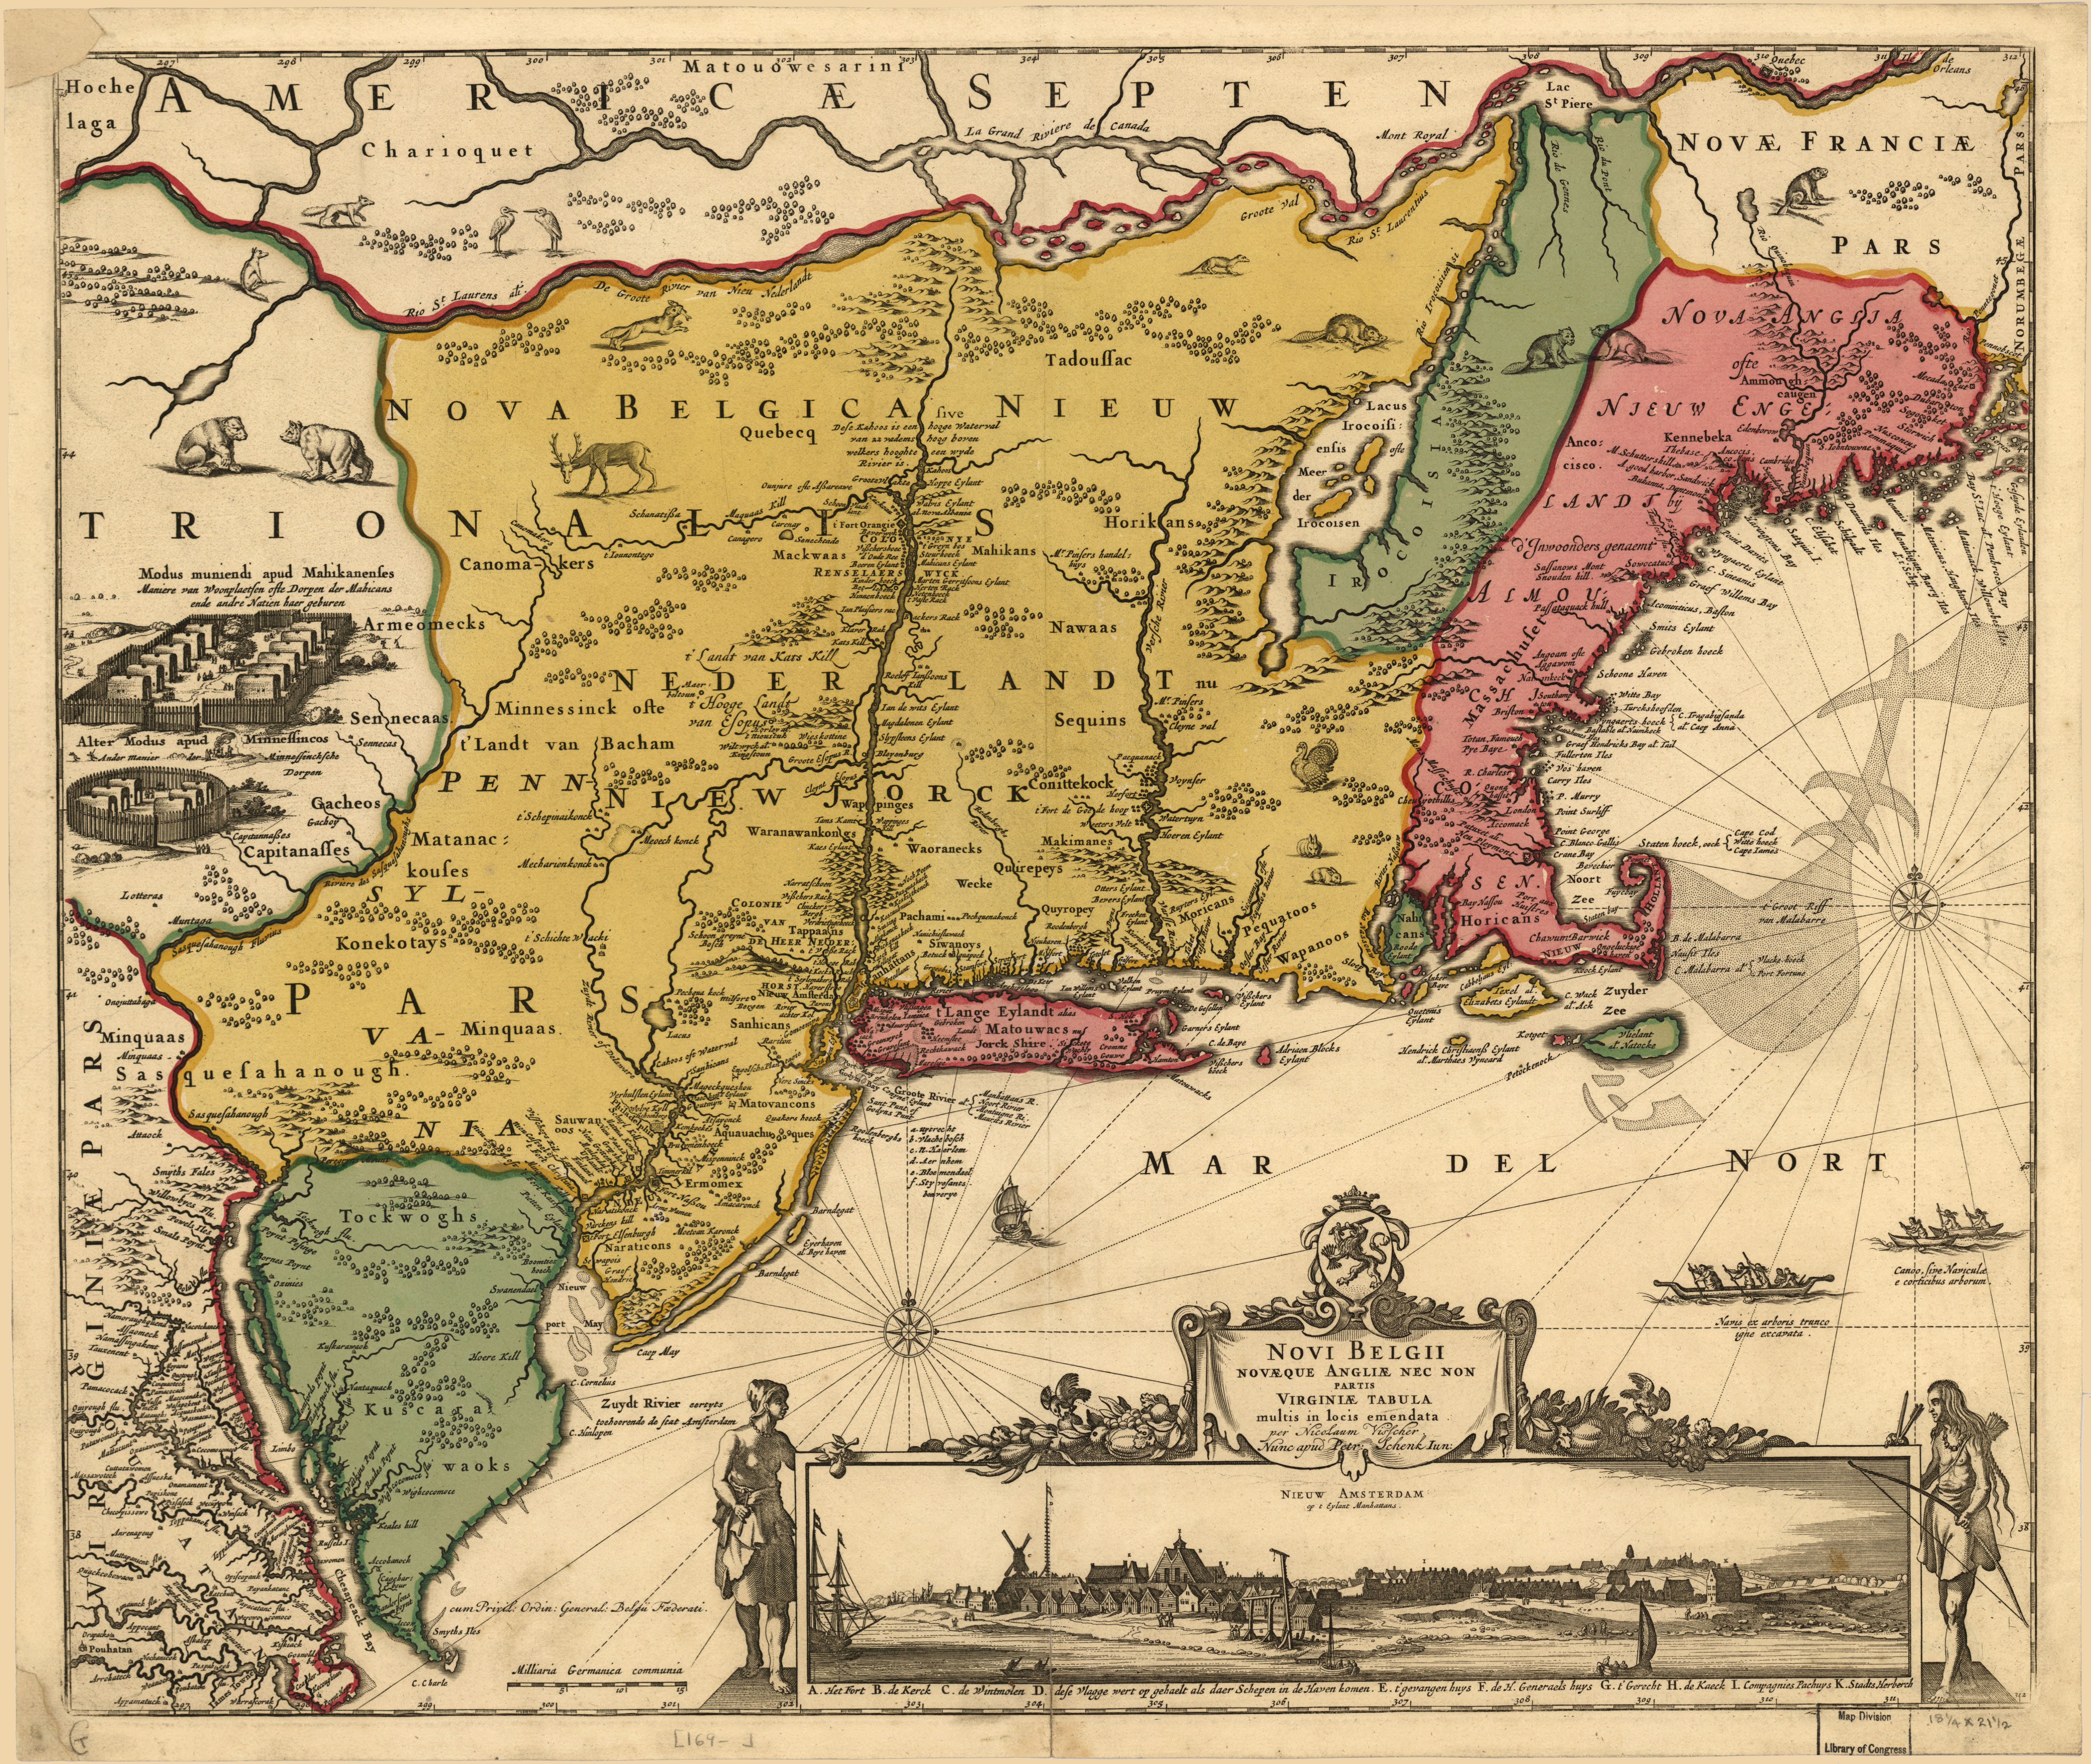 Dutch colonization of the americas wikipedia 1685 reprint of a 1656 map of the dutch north american colonies showing extent of dutch claims from chesapeake bay and the susquehanna river in the south publicscrutiny